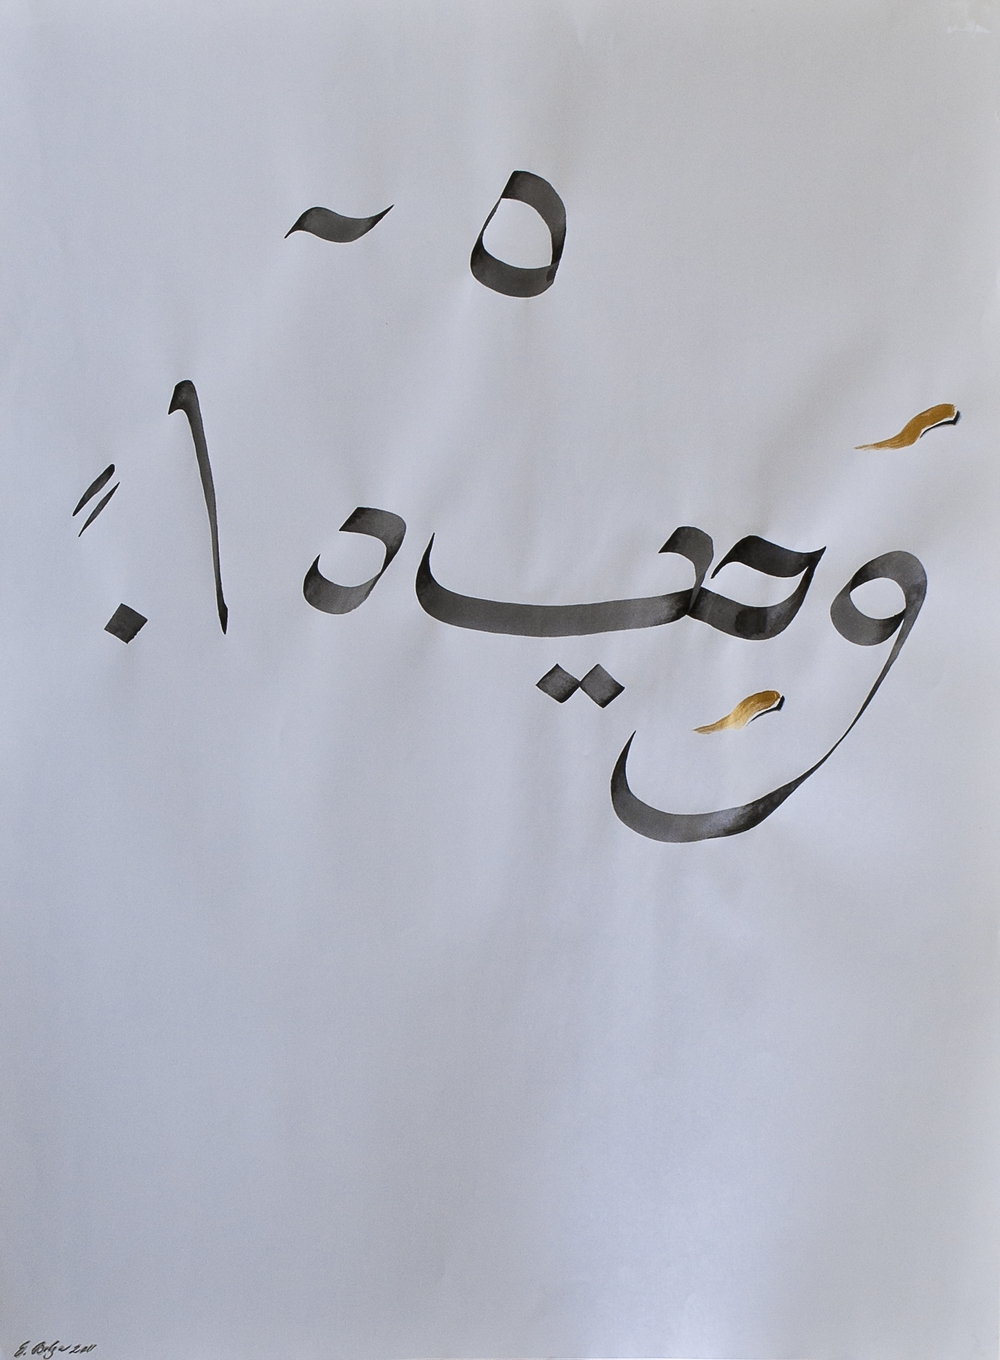 Calligraphic Installation Sheet   92 x 100 cm